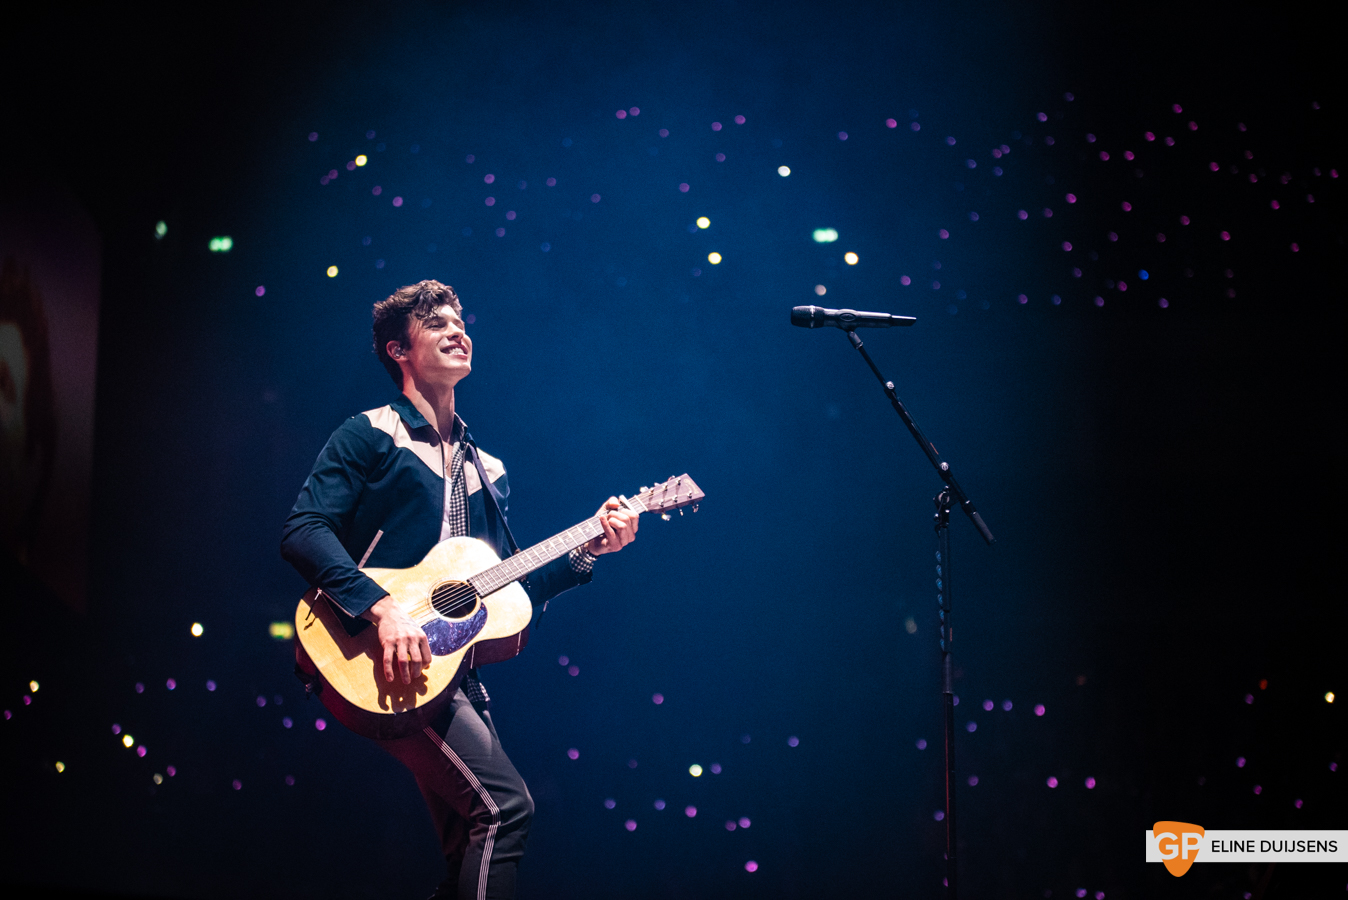 20190311-Shawn Mendes-Verti Music Hall-Eline J Duijsens-GP-13